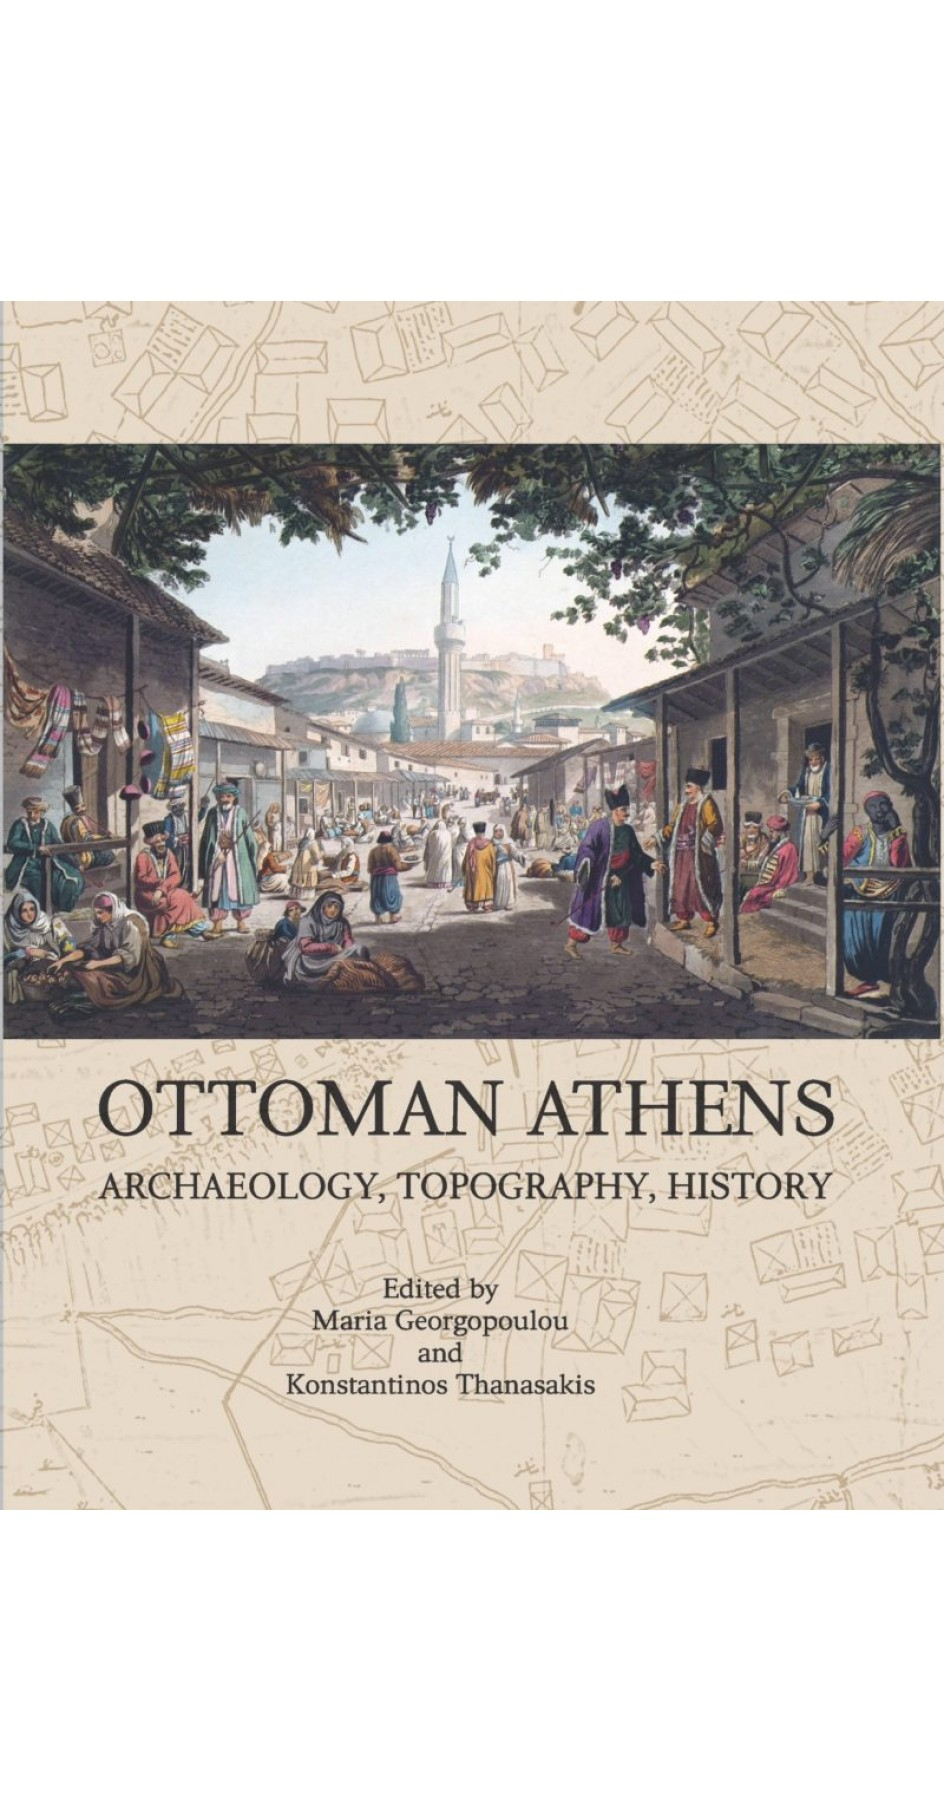 OTTOMAN ATHENS ARCHAEOLOGY, TOPOGRAPHY, HISTORY